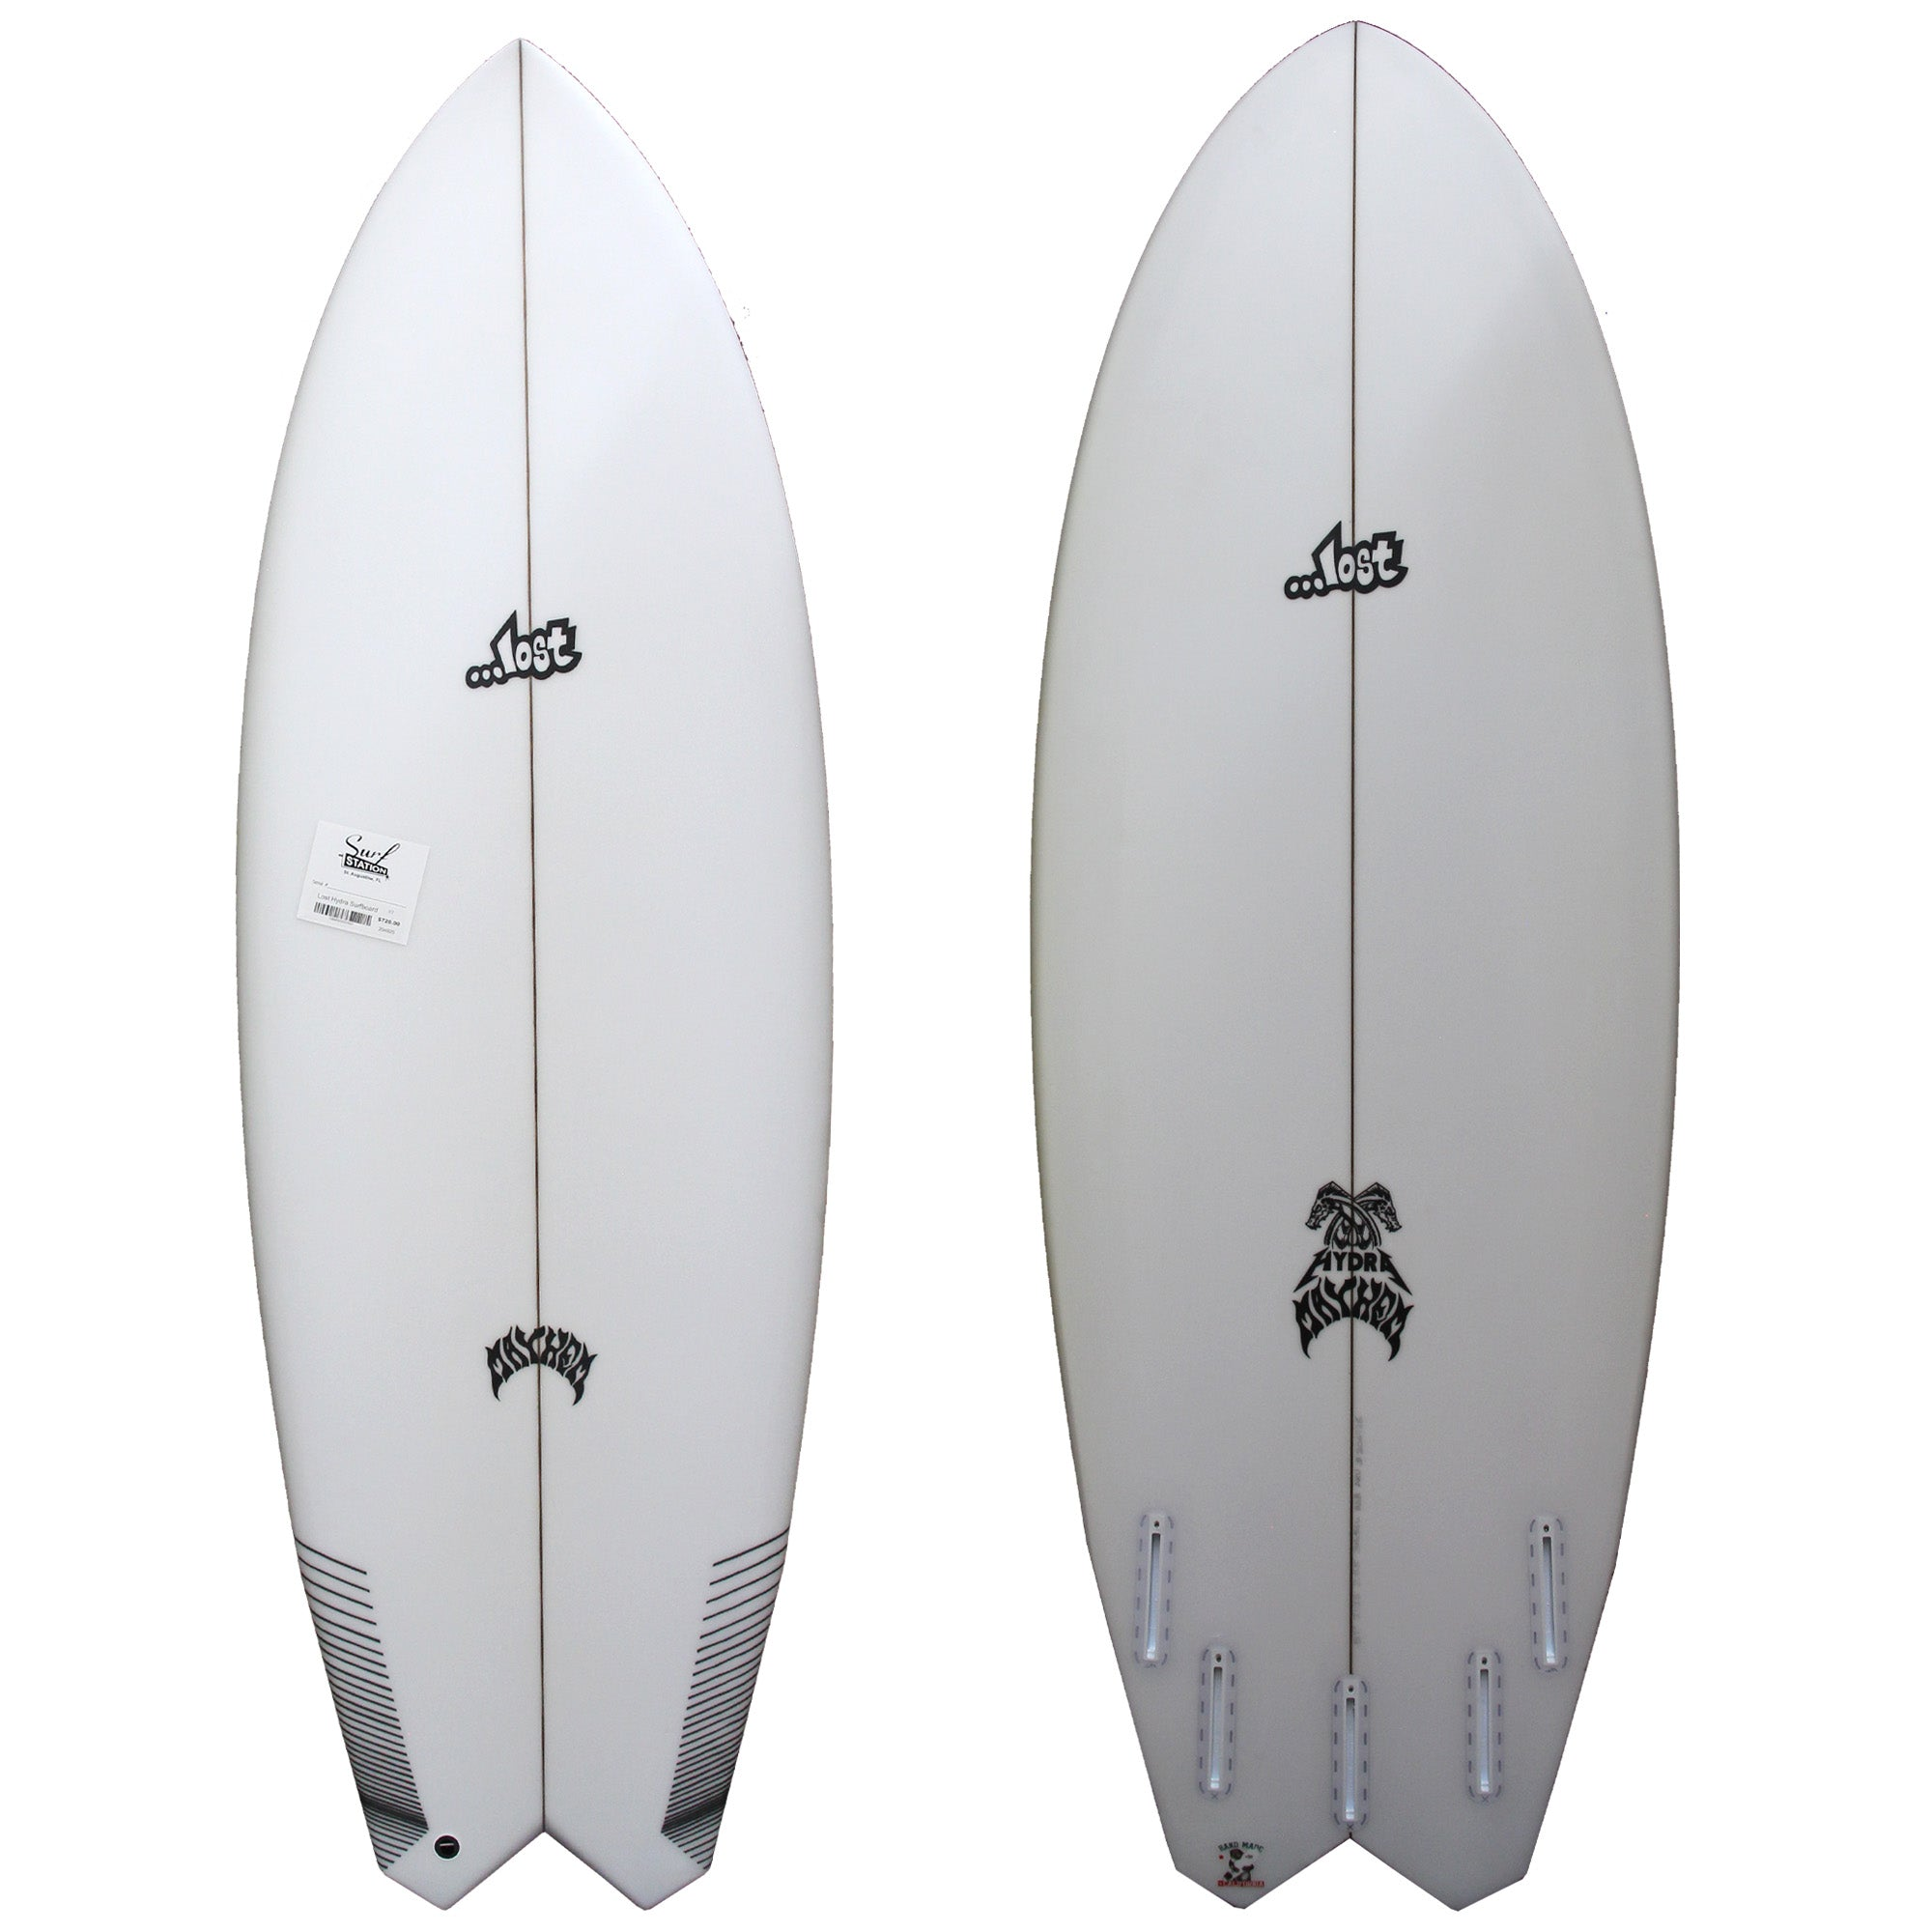 Lost Hydra Surfboard - Futures